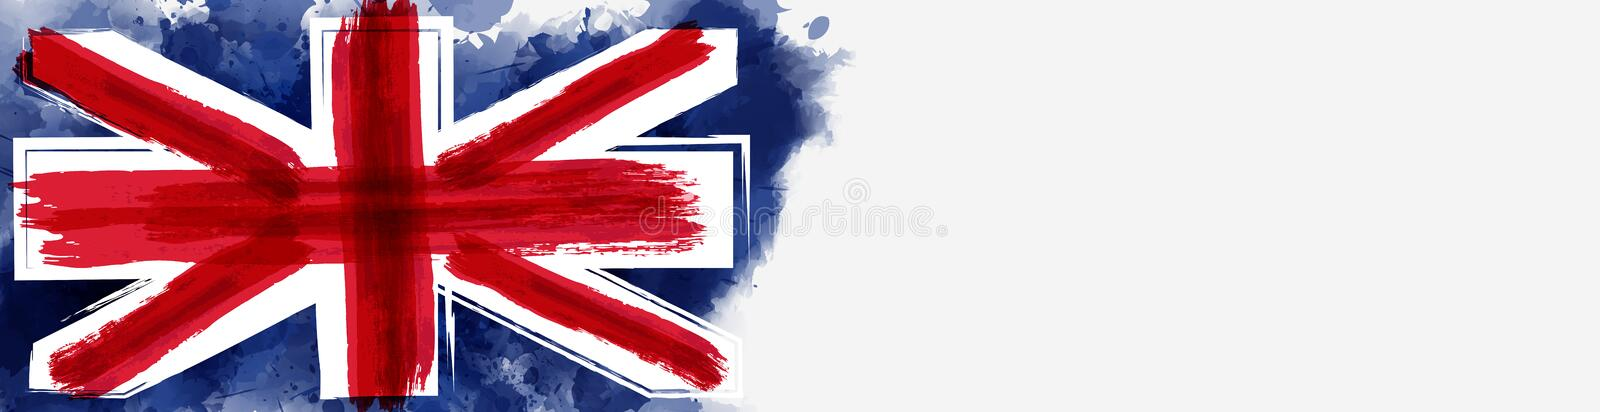 Grunge flag of the United Kingdom. Abstract flag of the United Kingdom. Grunge painted flag with watercolor splashed and brushed lines. Template for horizontal stock illustration